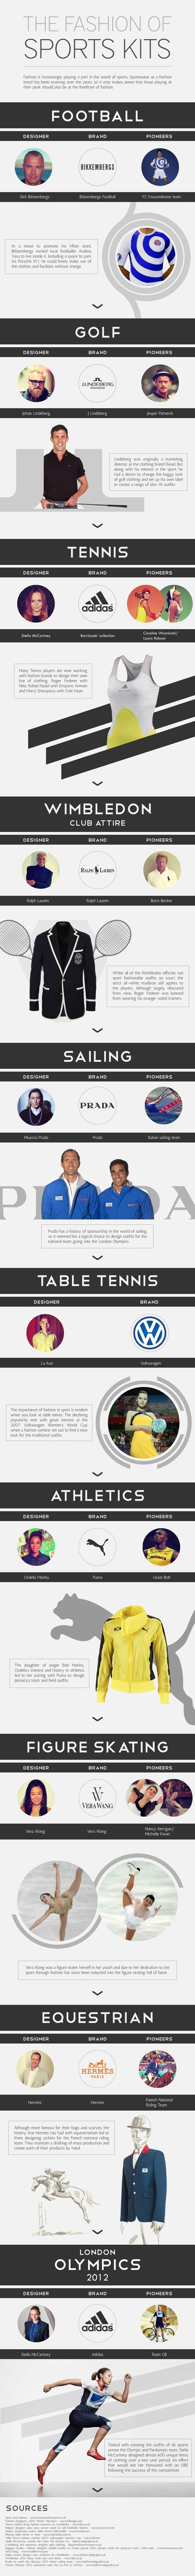 The Fashion of Sports Kits [Infographic] | Sport & Fashion | Scoop.it